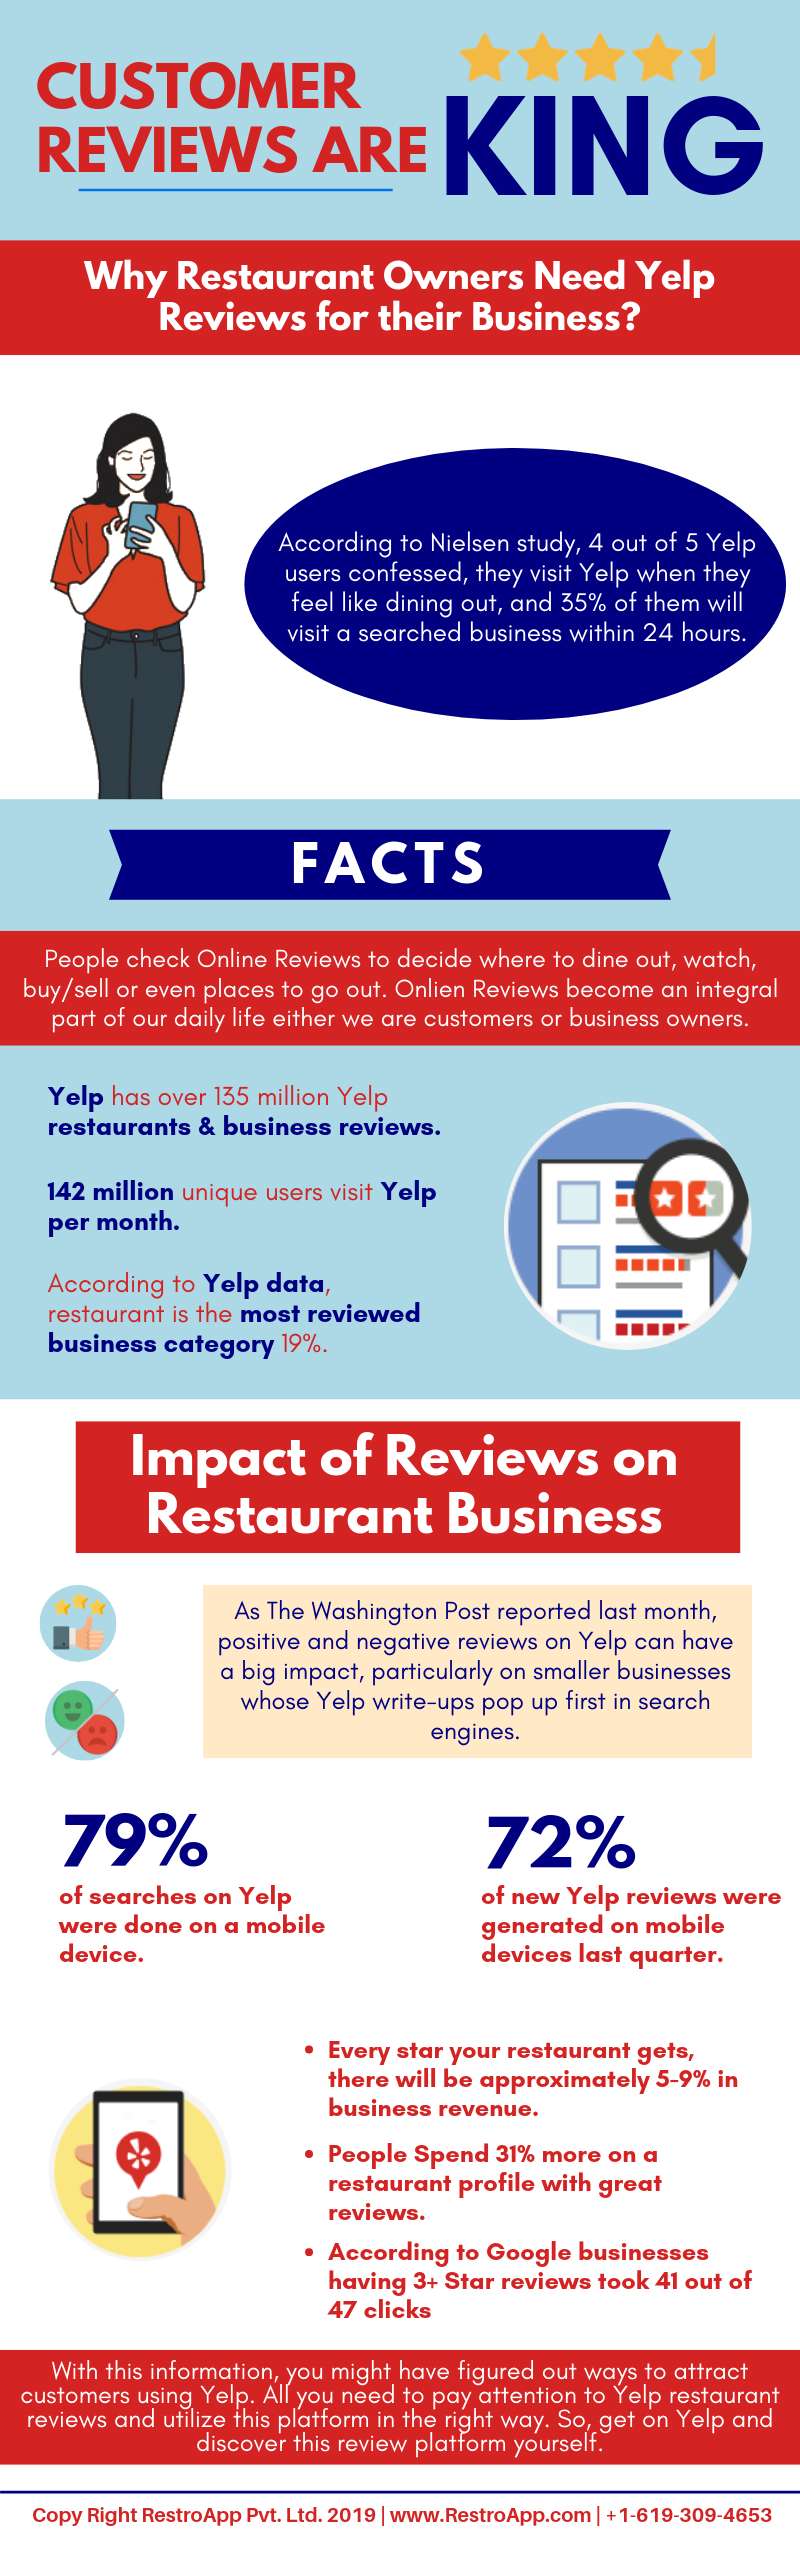 Why Restaurant Owners Need Yelp Reviews for their Business - RestroApp